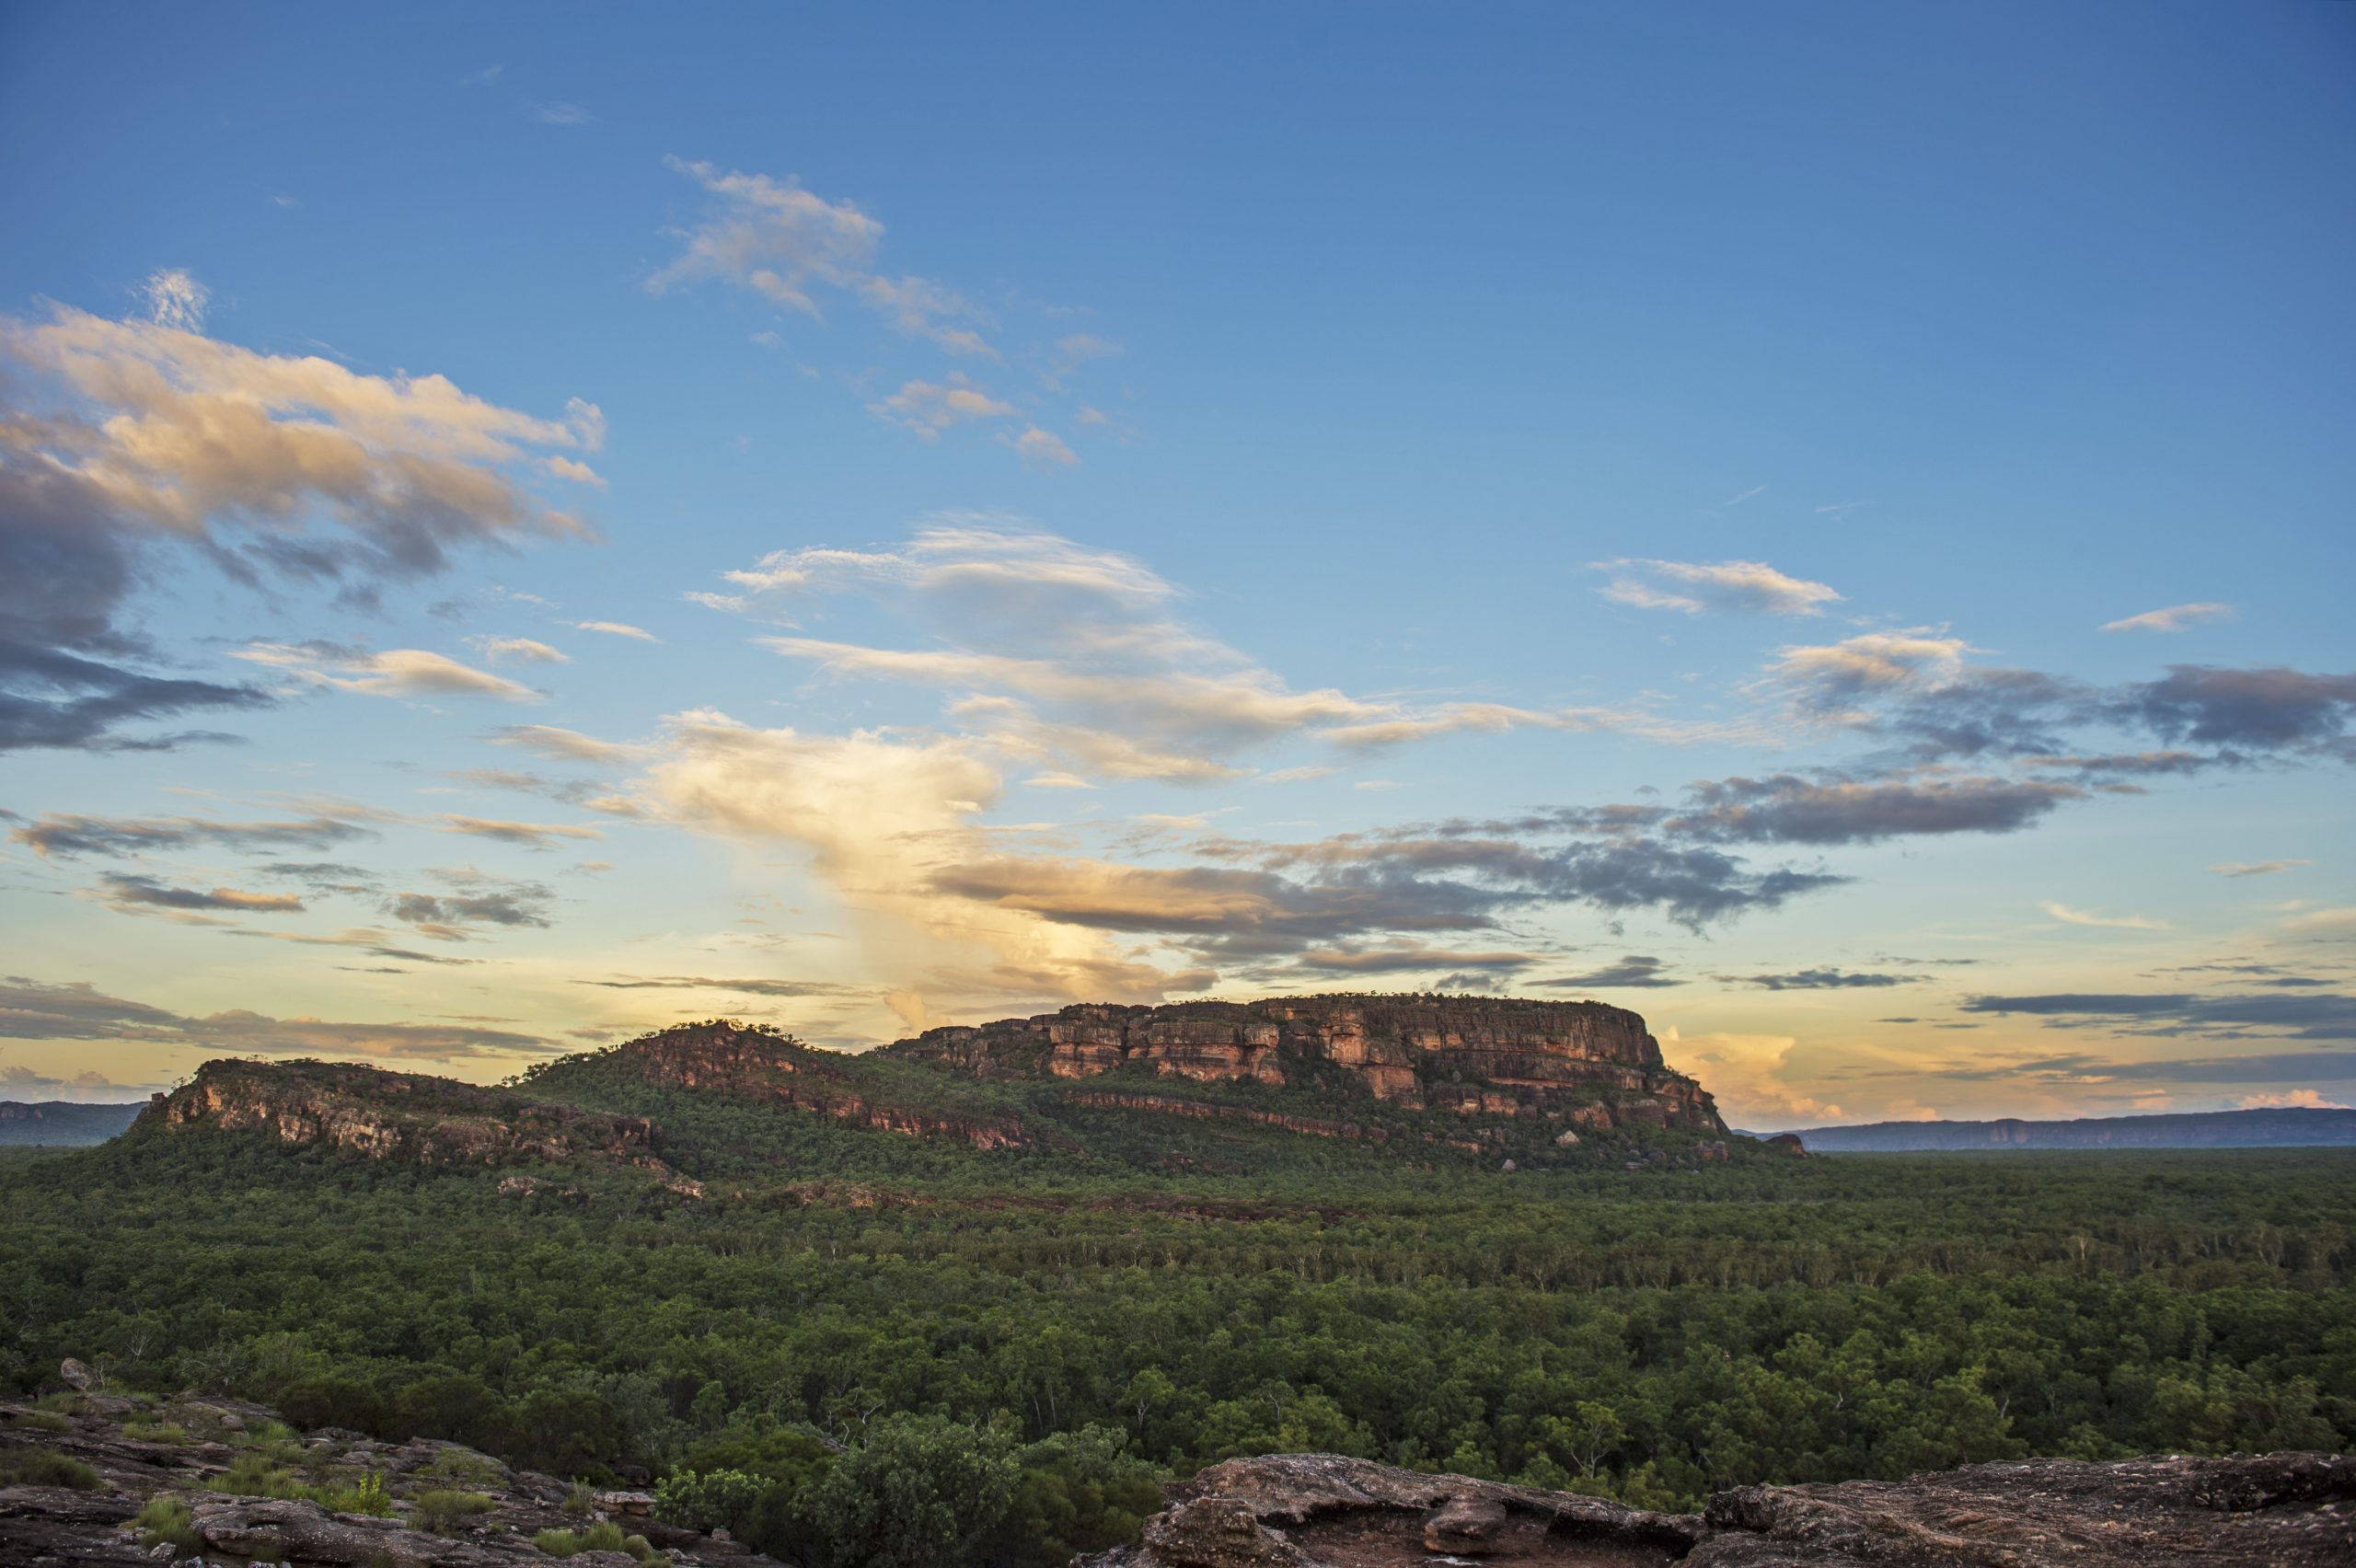 Kakadu, Arnhem Land & Gunlom Falls Adventure | Nourlangie Rock, Kakadu National Park, Northern Territory